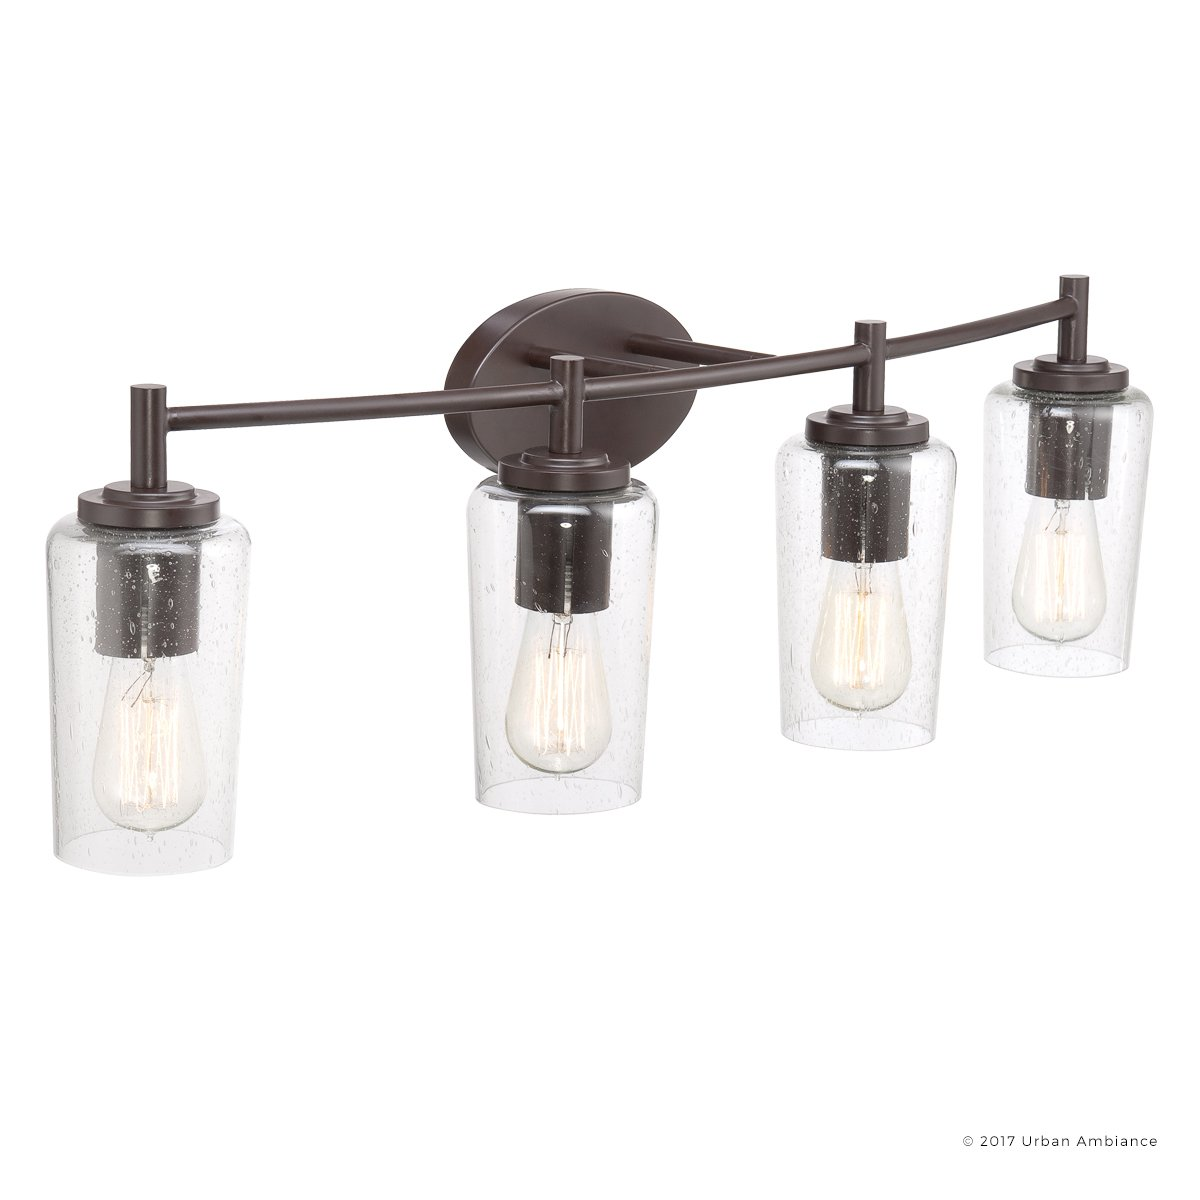 Luxury Vintage Bathroom Vanity Light, Large Size: 10''H x 32.5''W, with Antique Style Elements, Elegant Estate Bronze Finish and Seeded Glass, Includes Edison Bulbs, UQL2273 by Urban Ambiance by Urban Ambiance